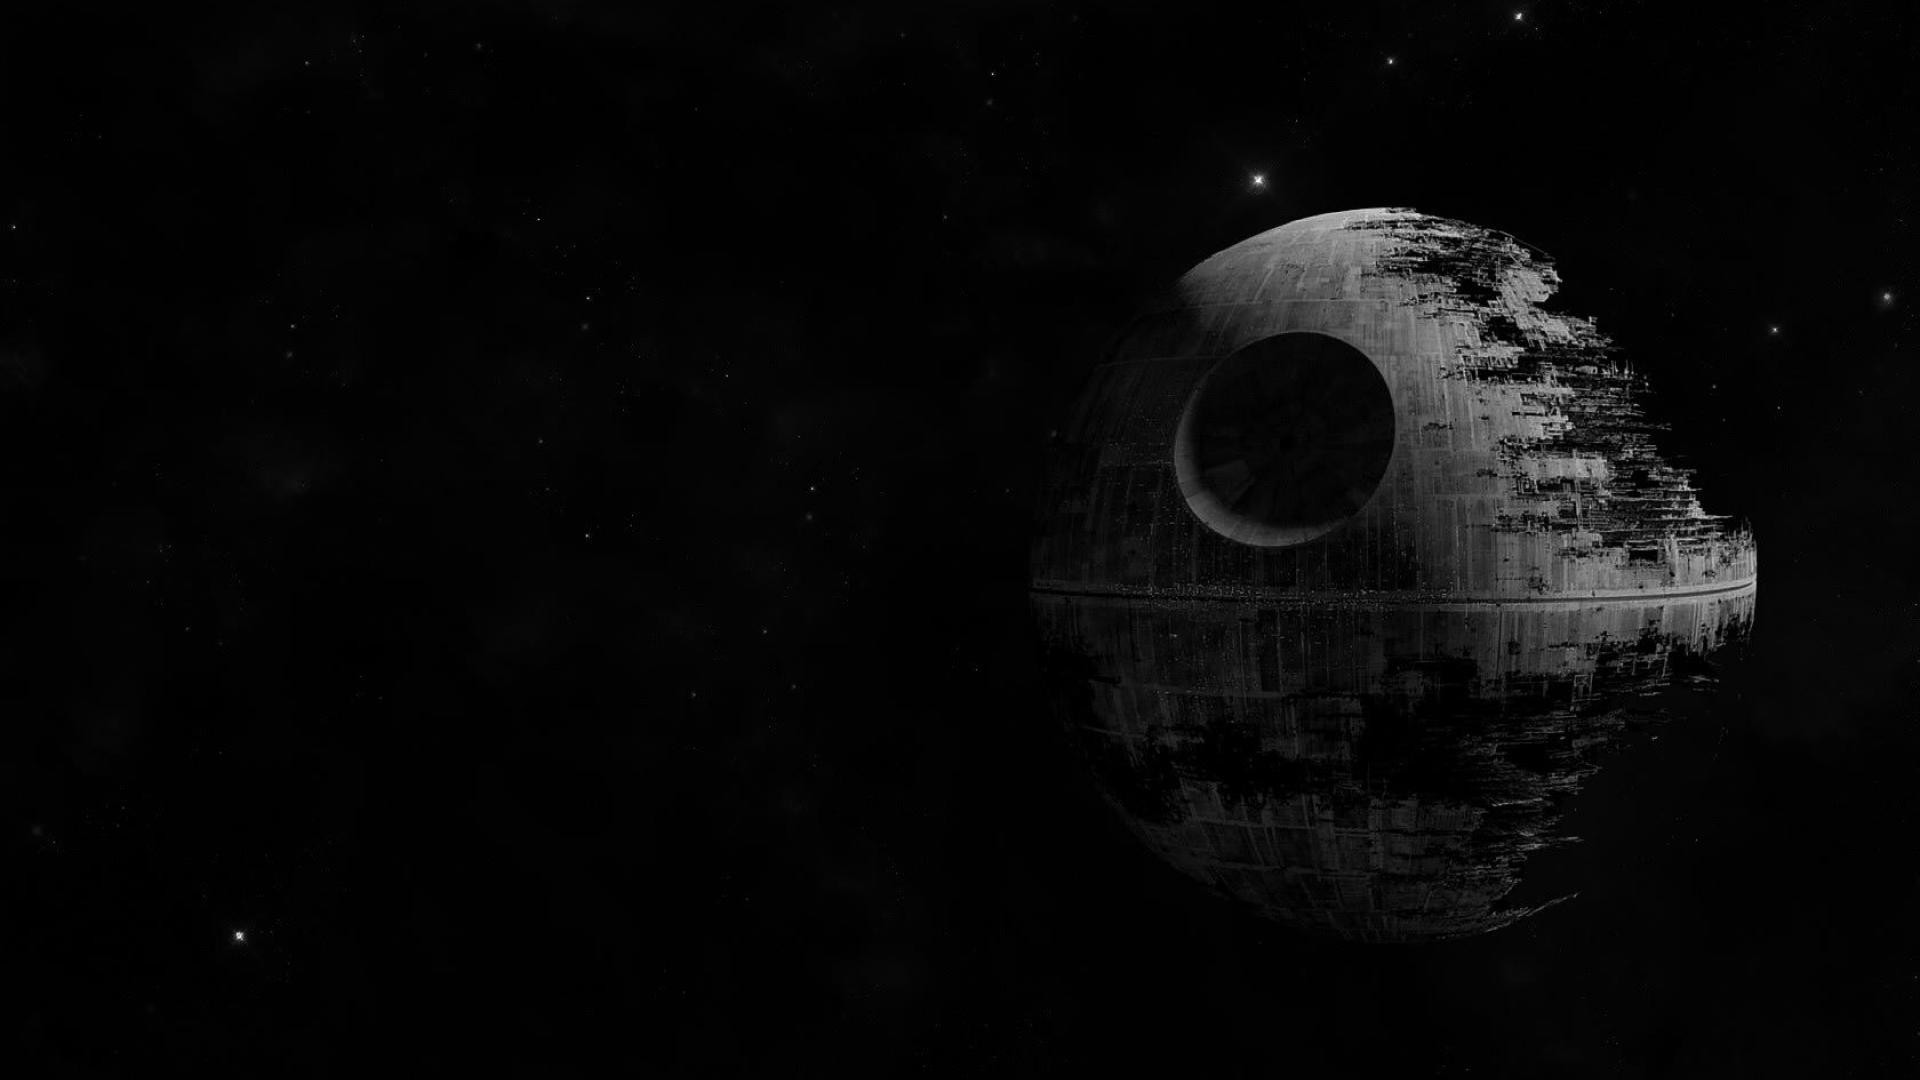 Star wars wallpaper hd 1080p 71 images for 1080p 1920x1080